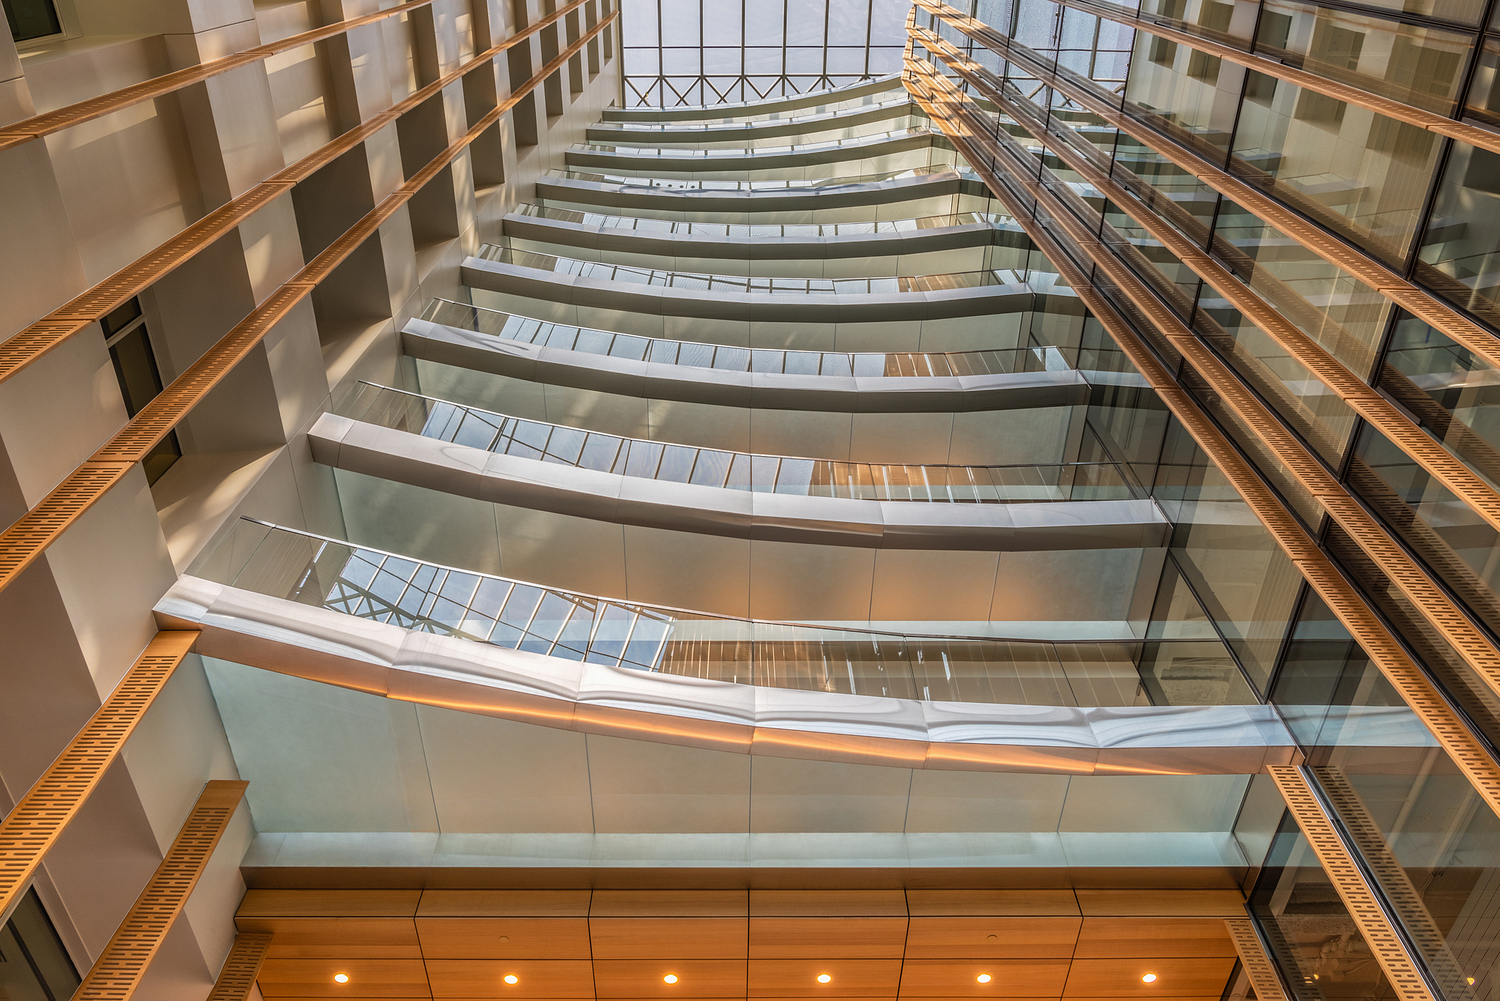 Stainless steel and glass balconies, office lobby, Washington DC